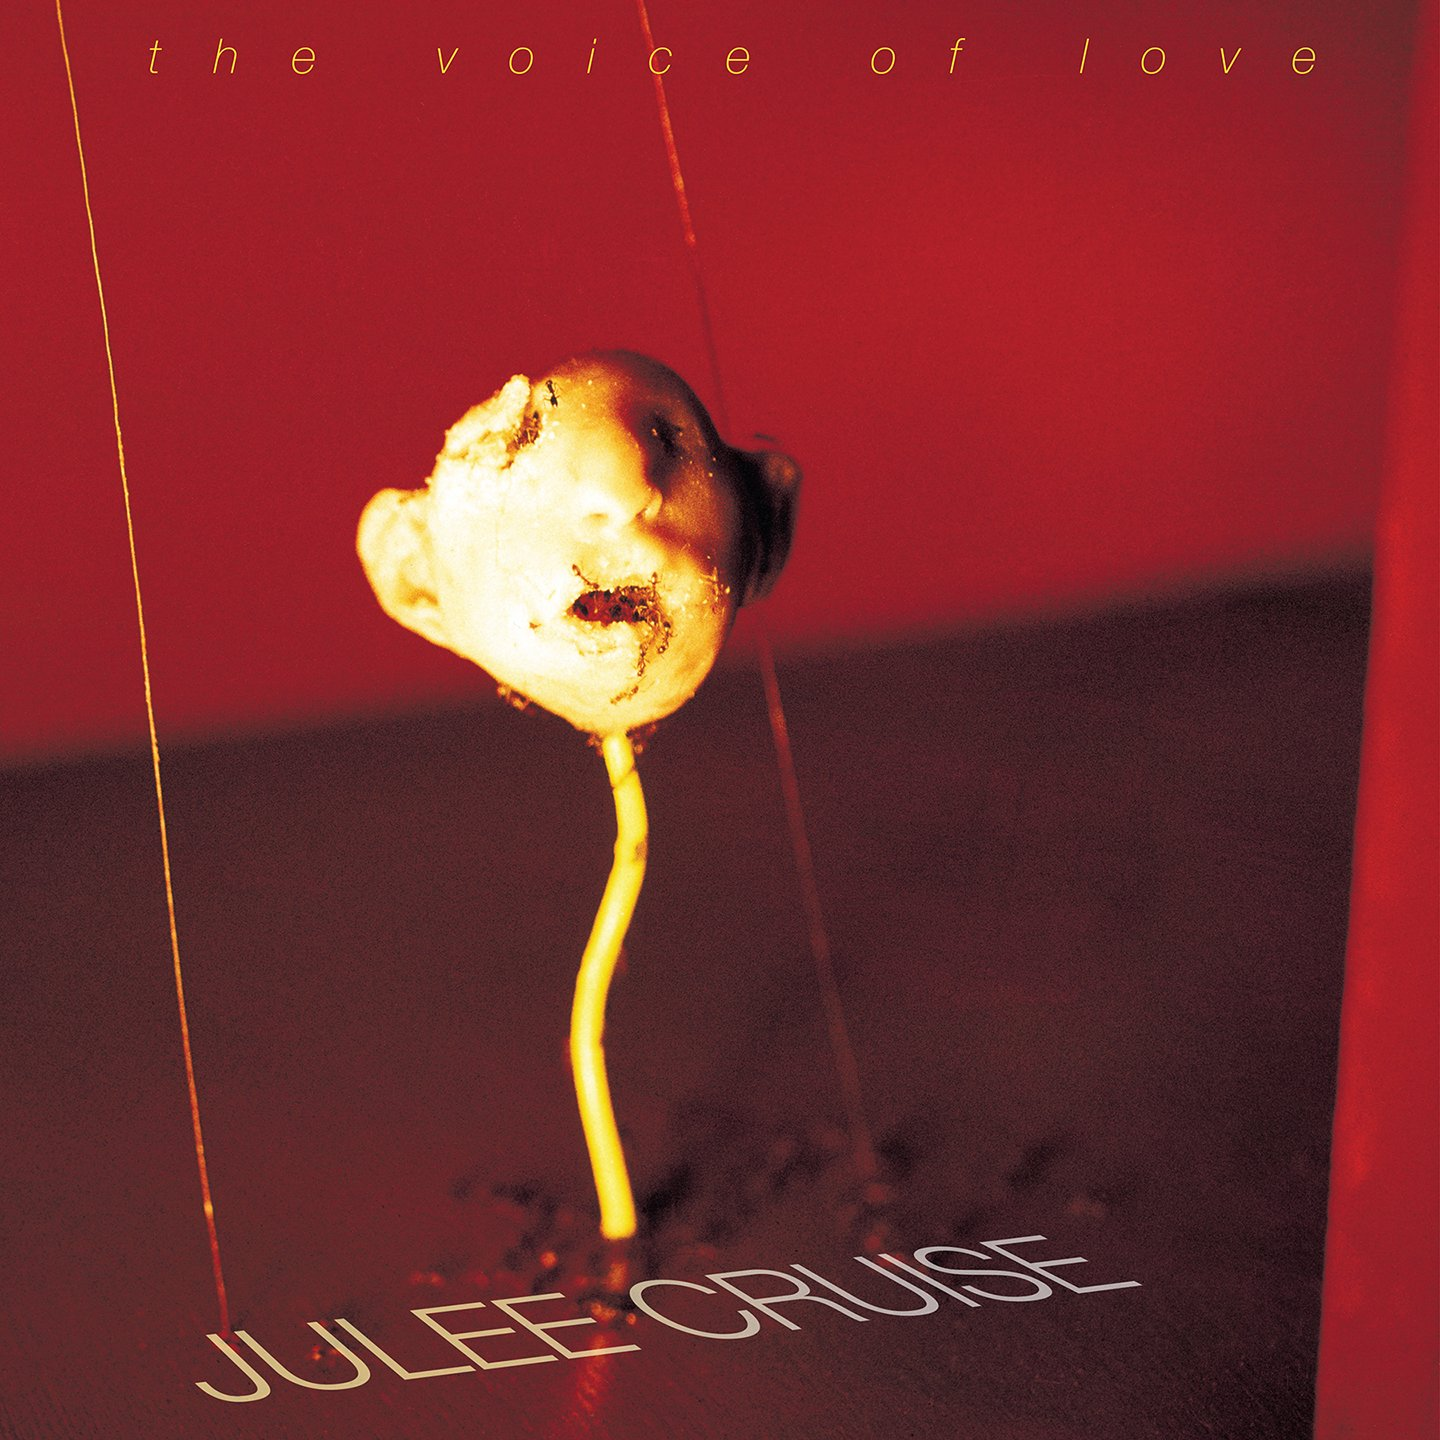 Vinilo : Julee Cruise - Voice Of Love (Colored Vinyl, Red, Limited Edition, 2PC)